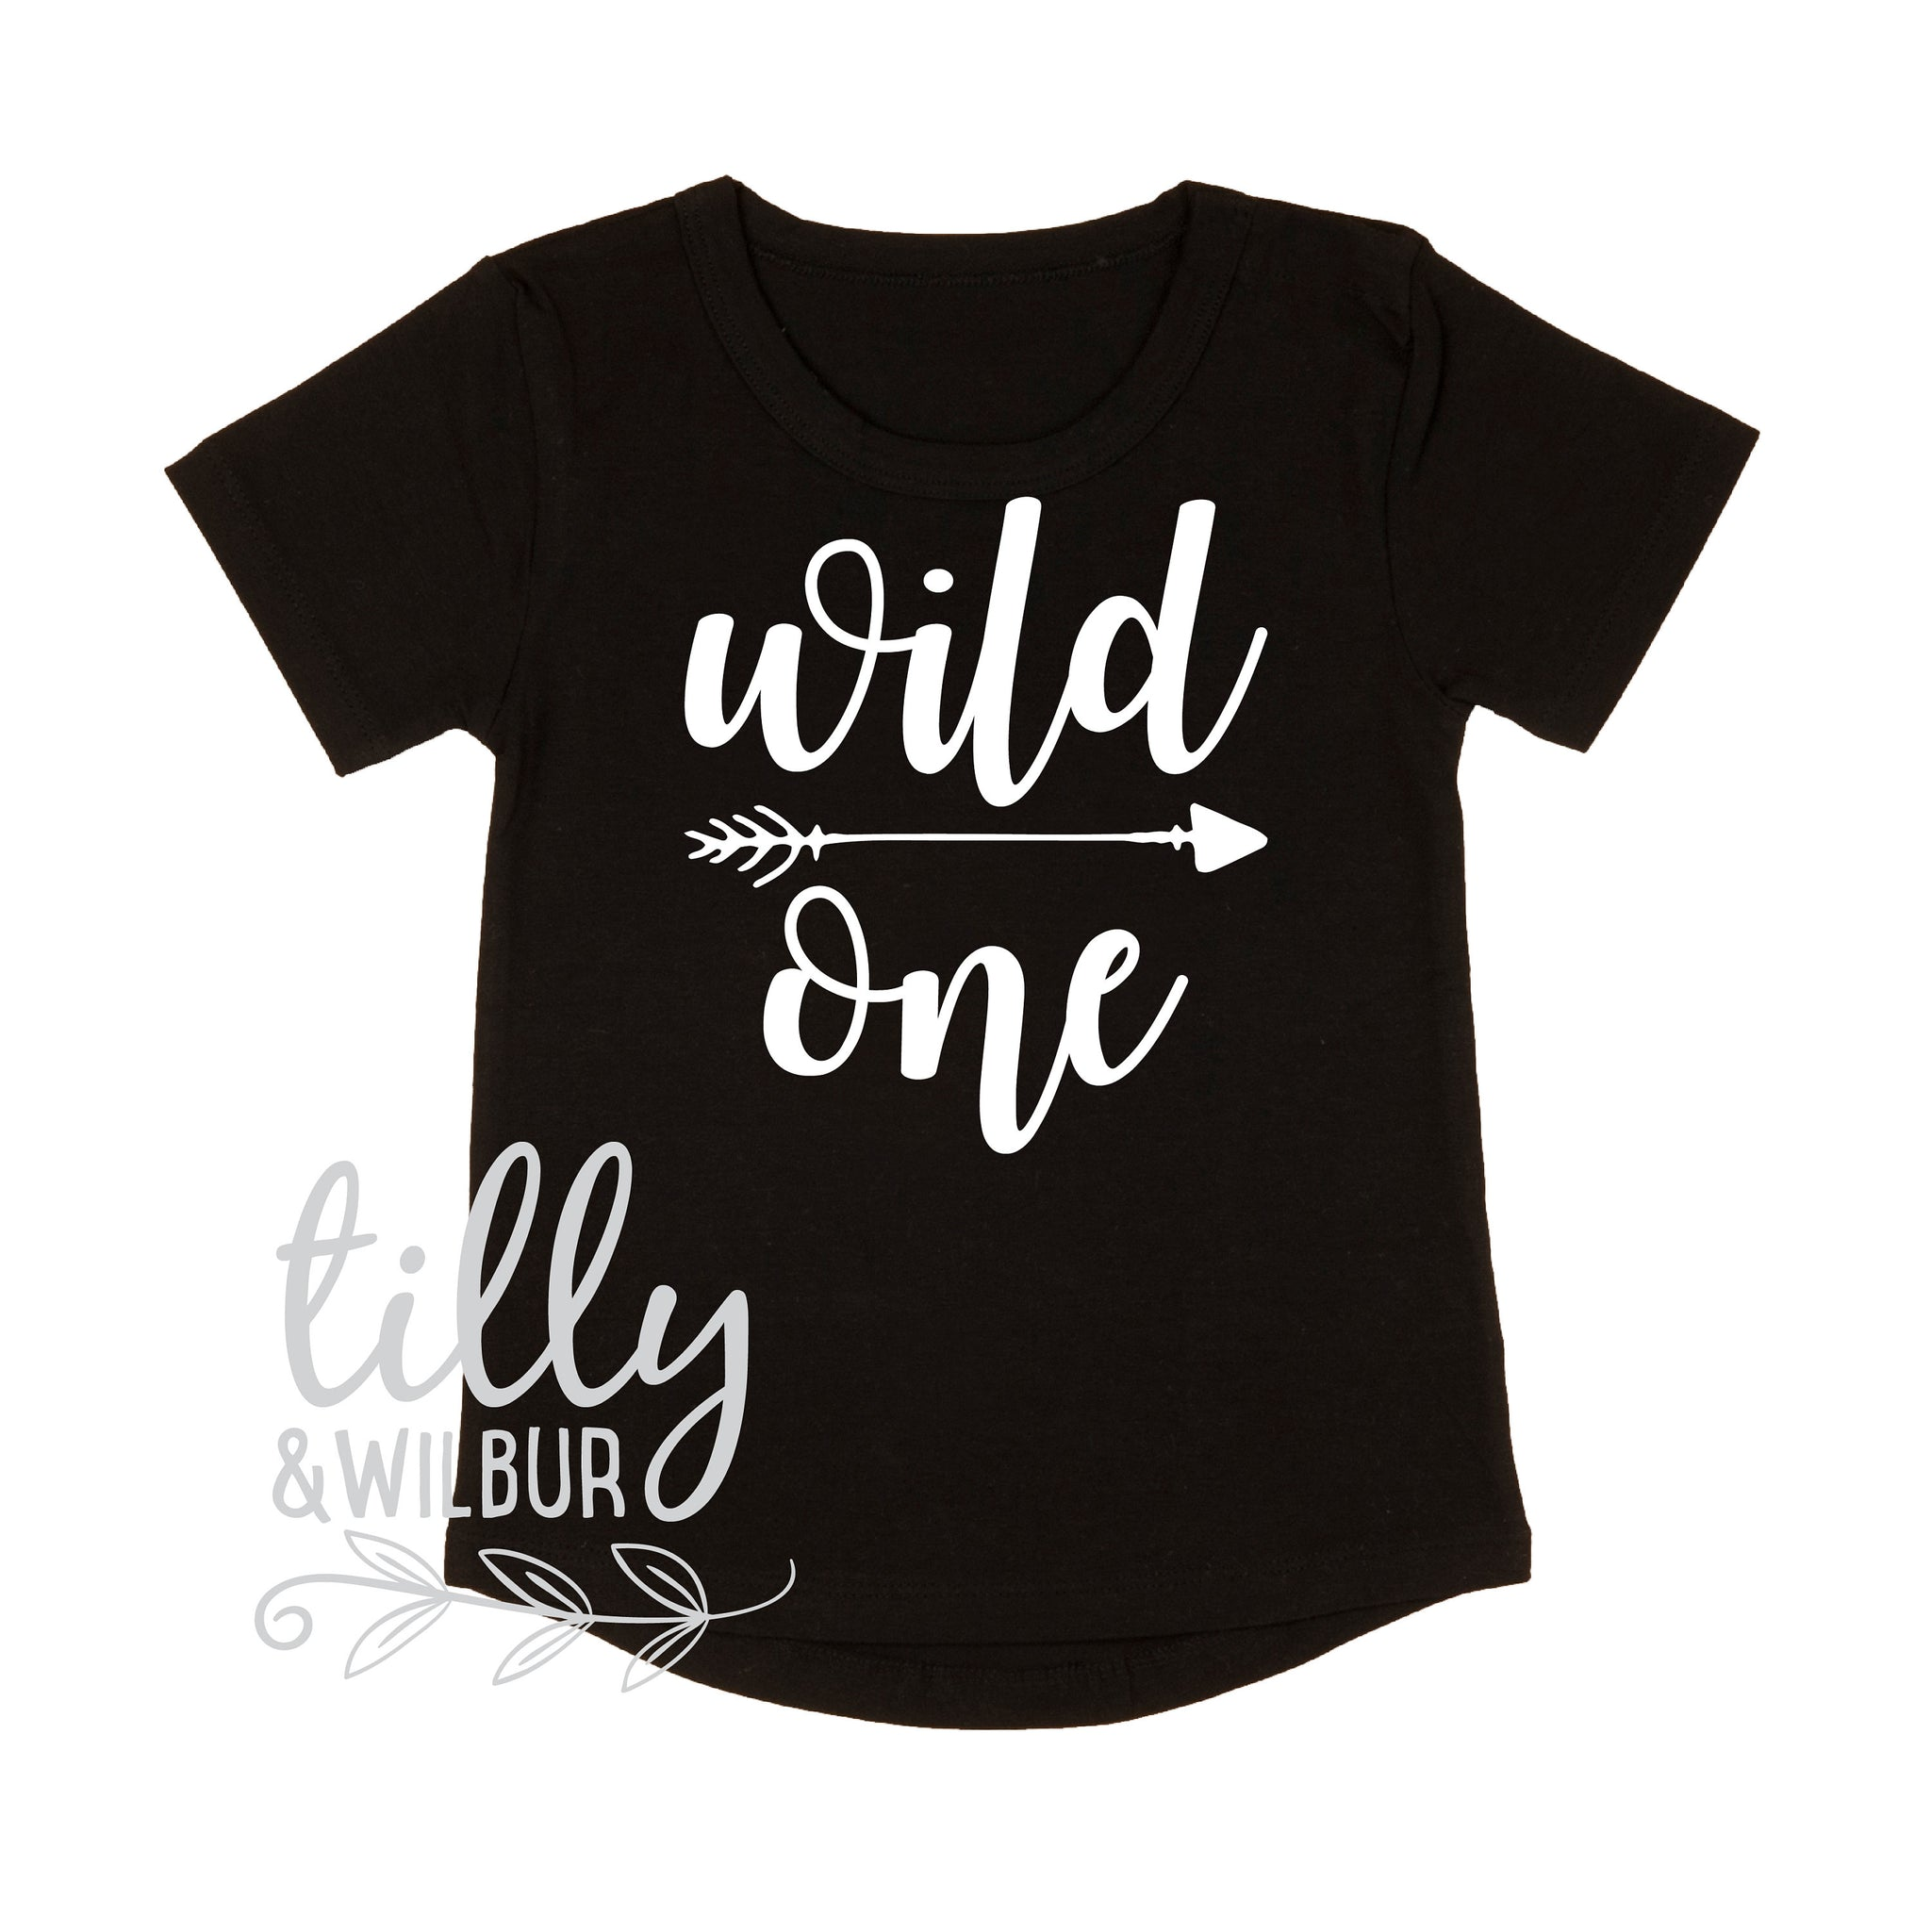 b503c2f0cda9 Wild One Boys 1st Birthday T-Shirt, Wild One Boys Birthday Shirt, Boys